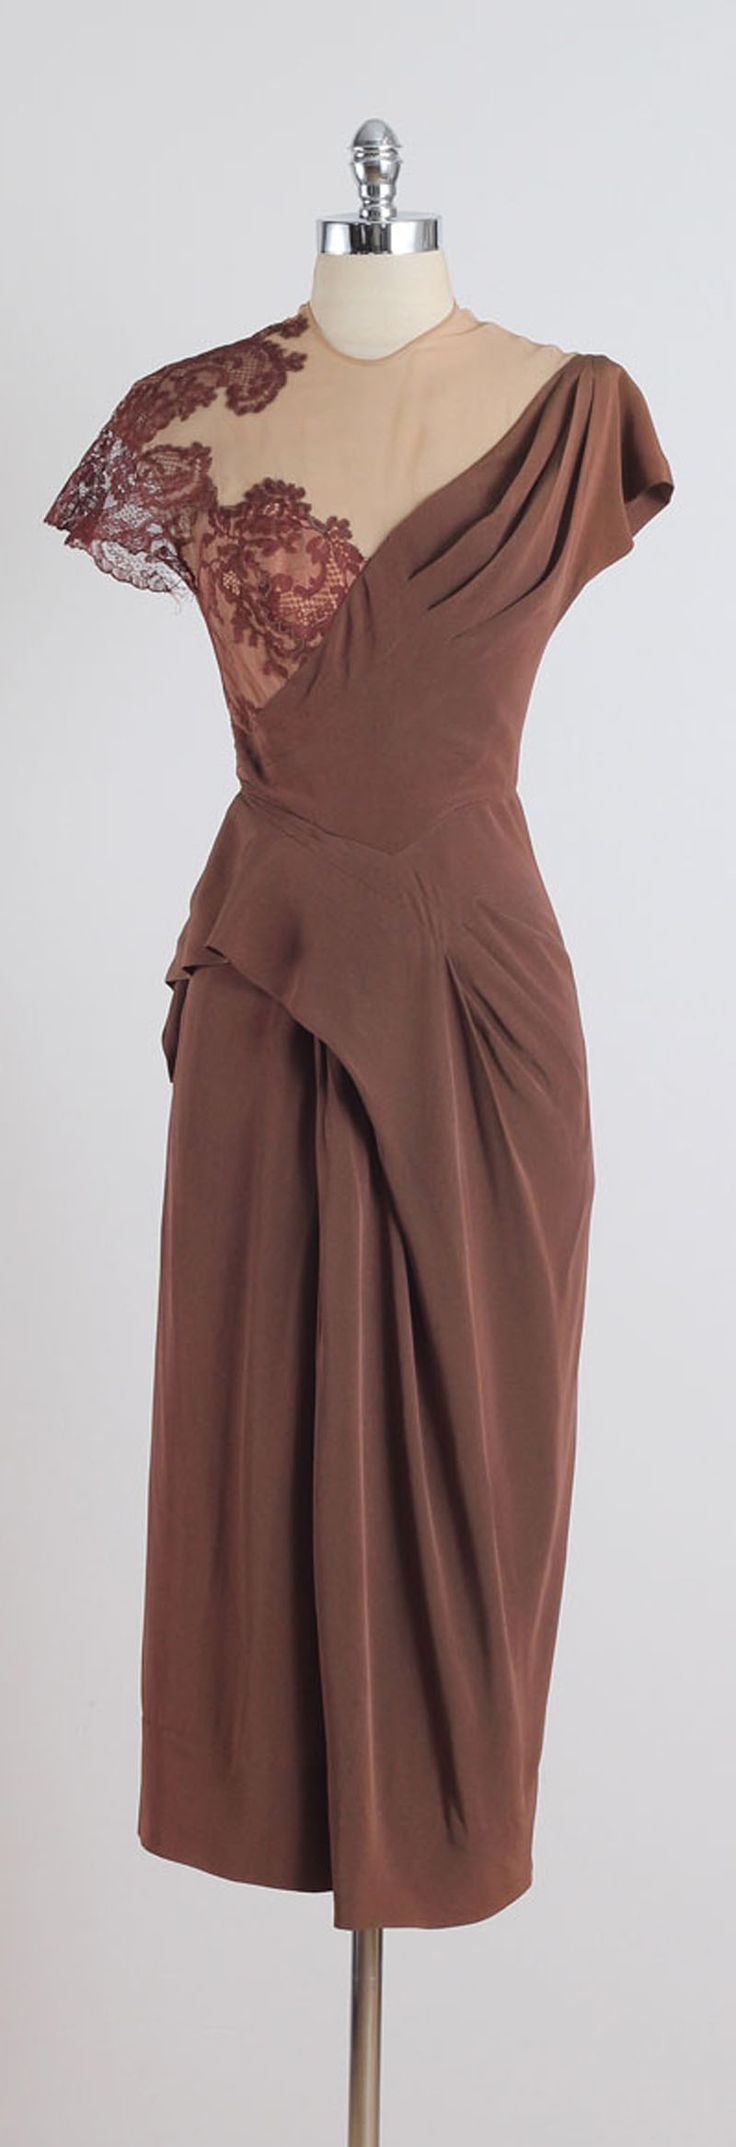 1940s Rayon Crepe Illusion Cocktail Dress | From a collection of rare vintage evening dresses at https://www.1stdibs.com/fashion/clothing/evening-dresses/